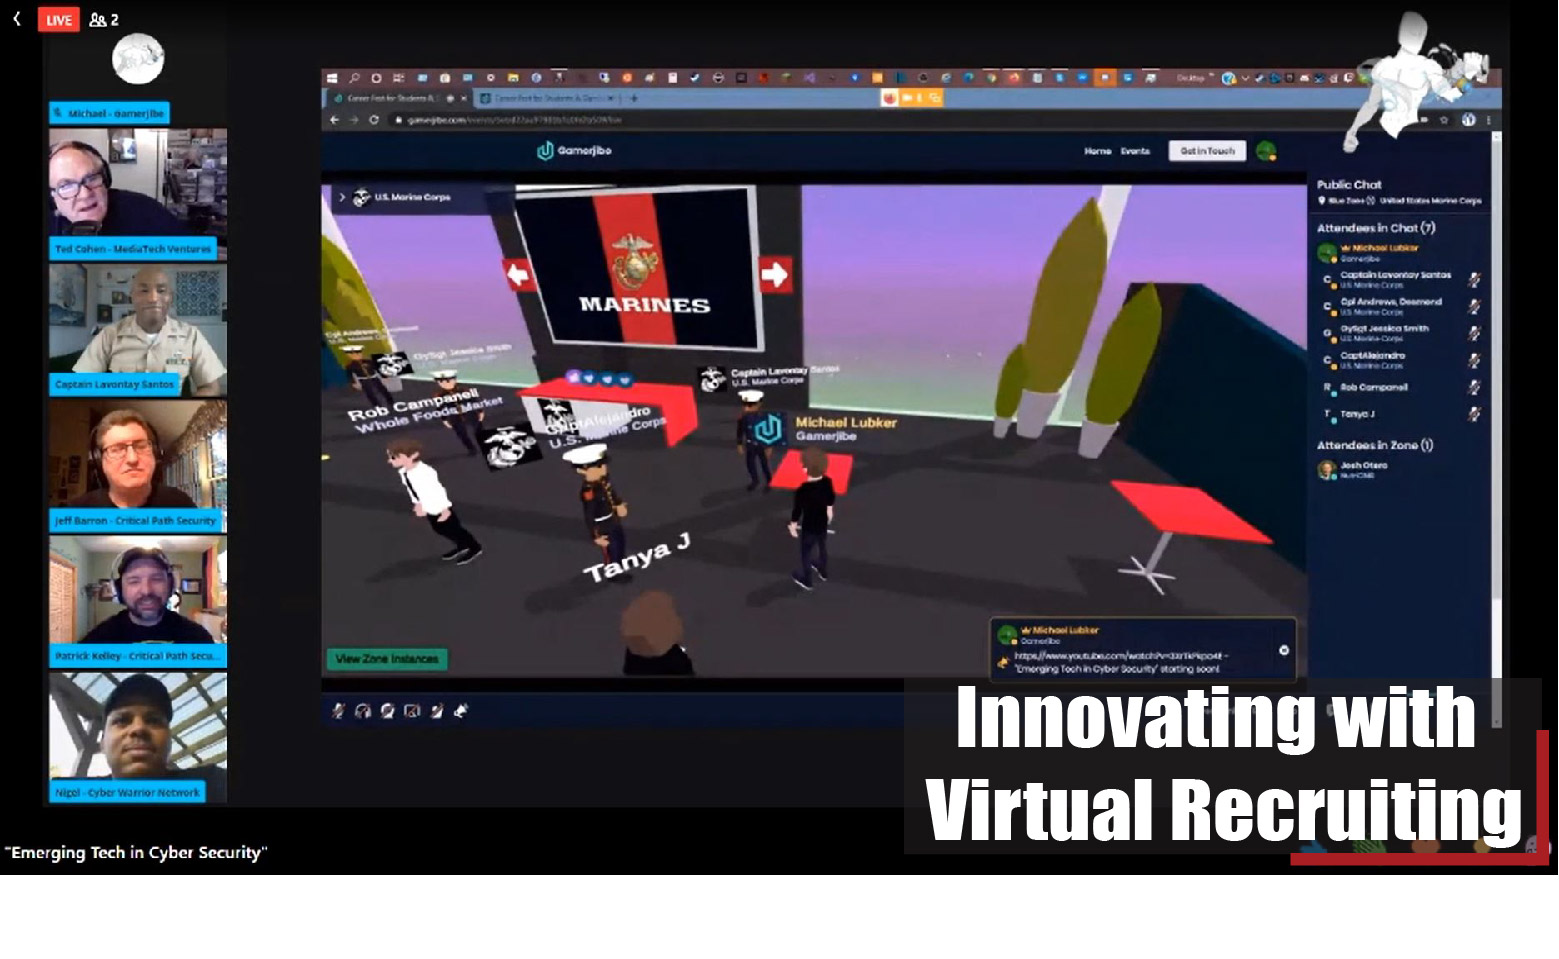 Innovating with Virtual Recruiting